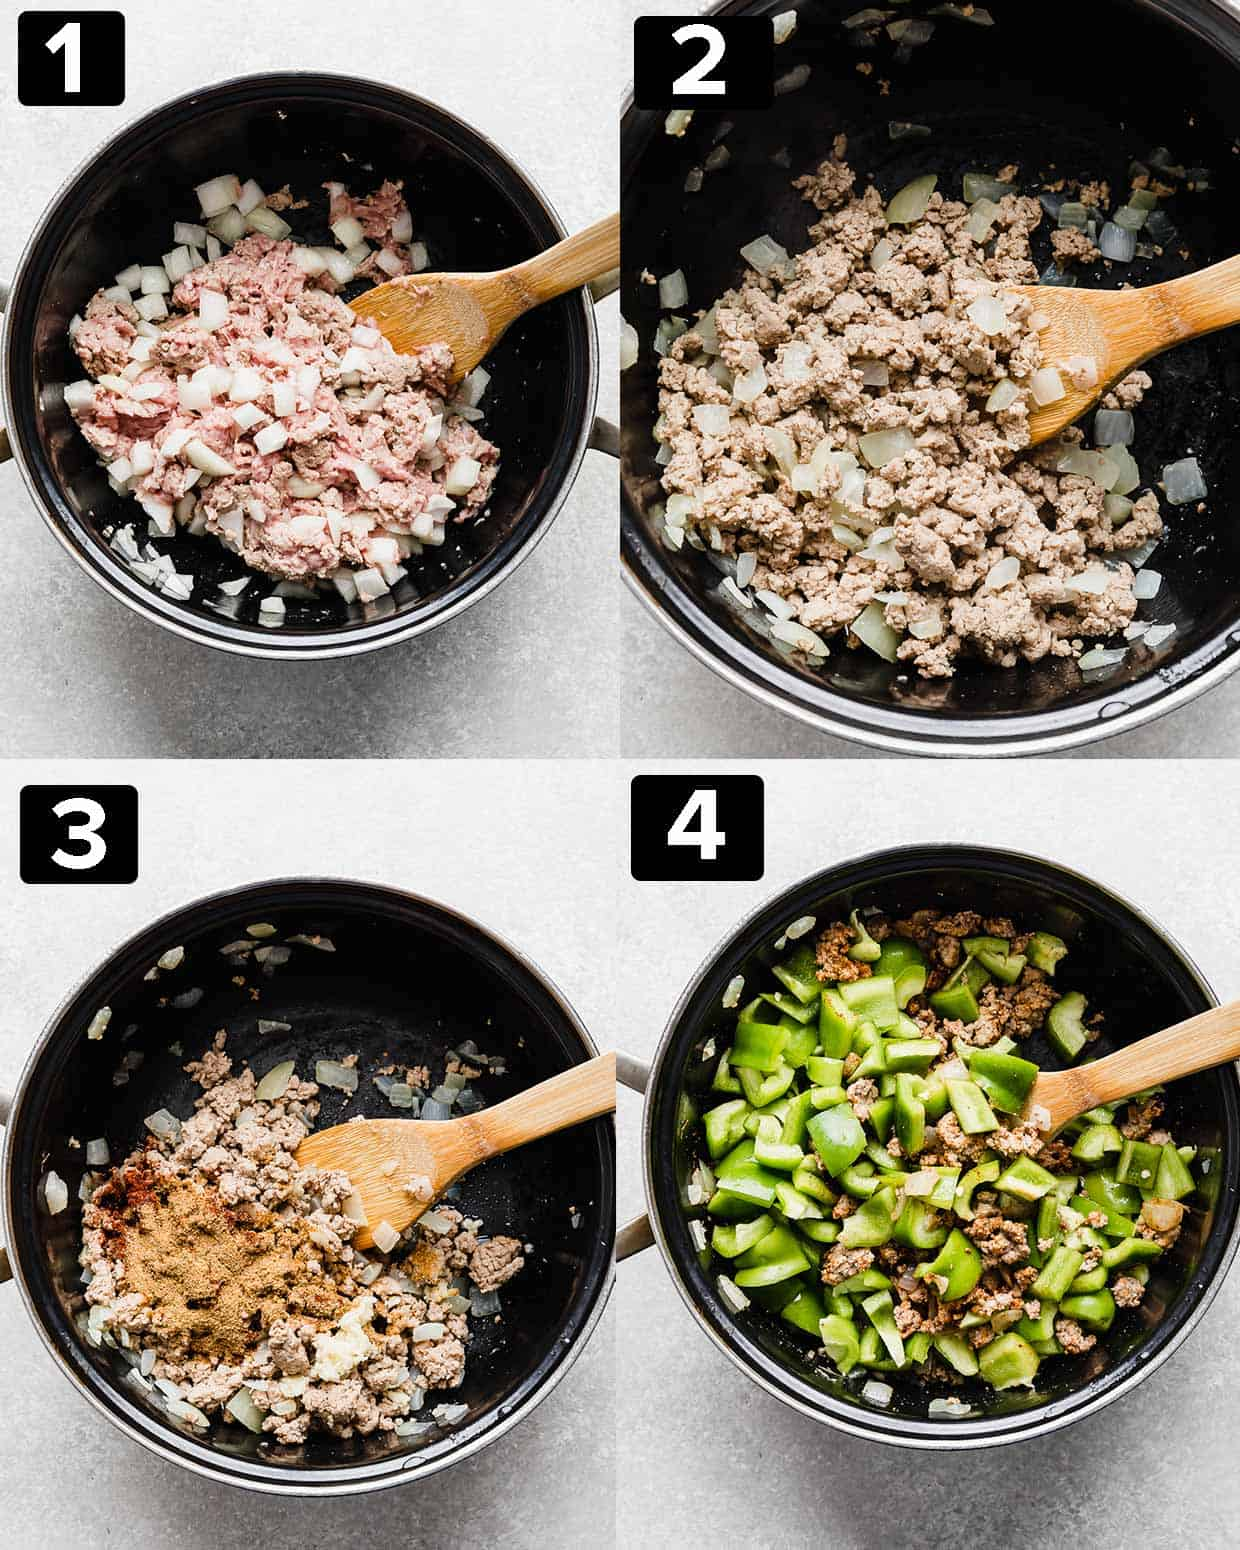 A four photo collage illustrating the process of making Deconstructed Stuffed Peppers.